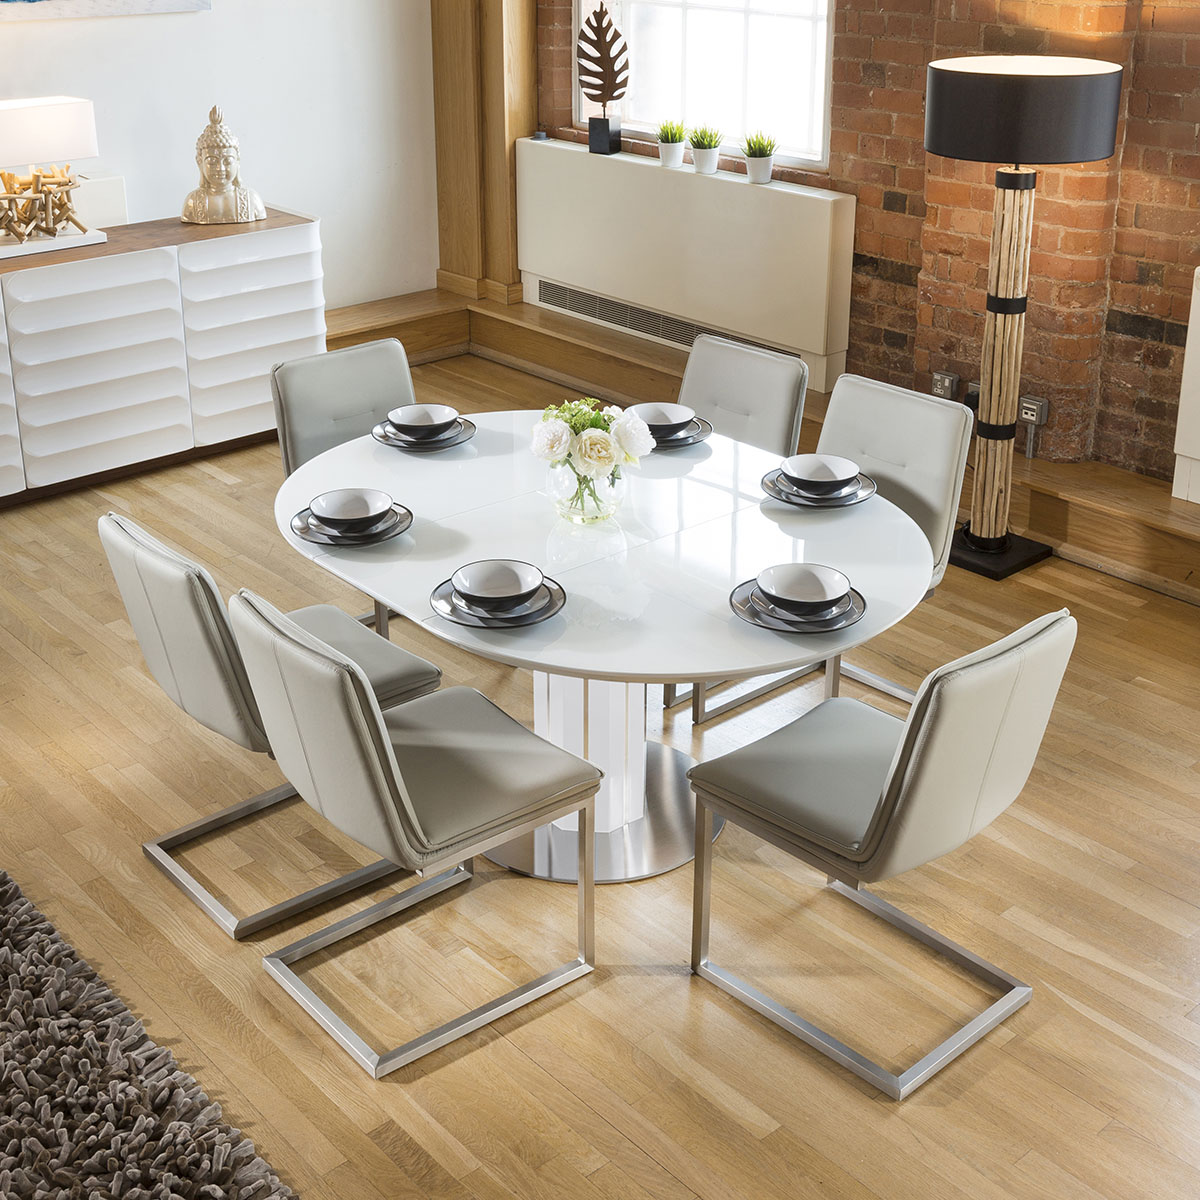 Modern Extending Dining Set Oval / Round Glass Wht Table 6 ...